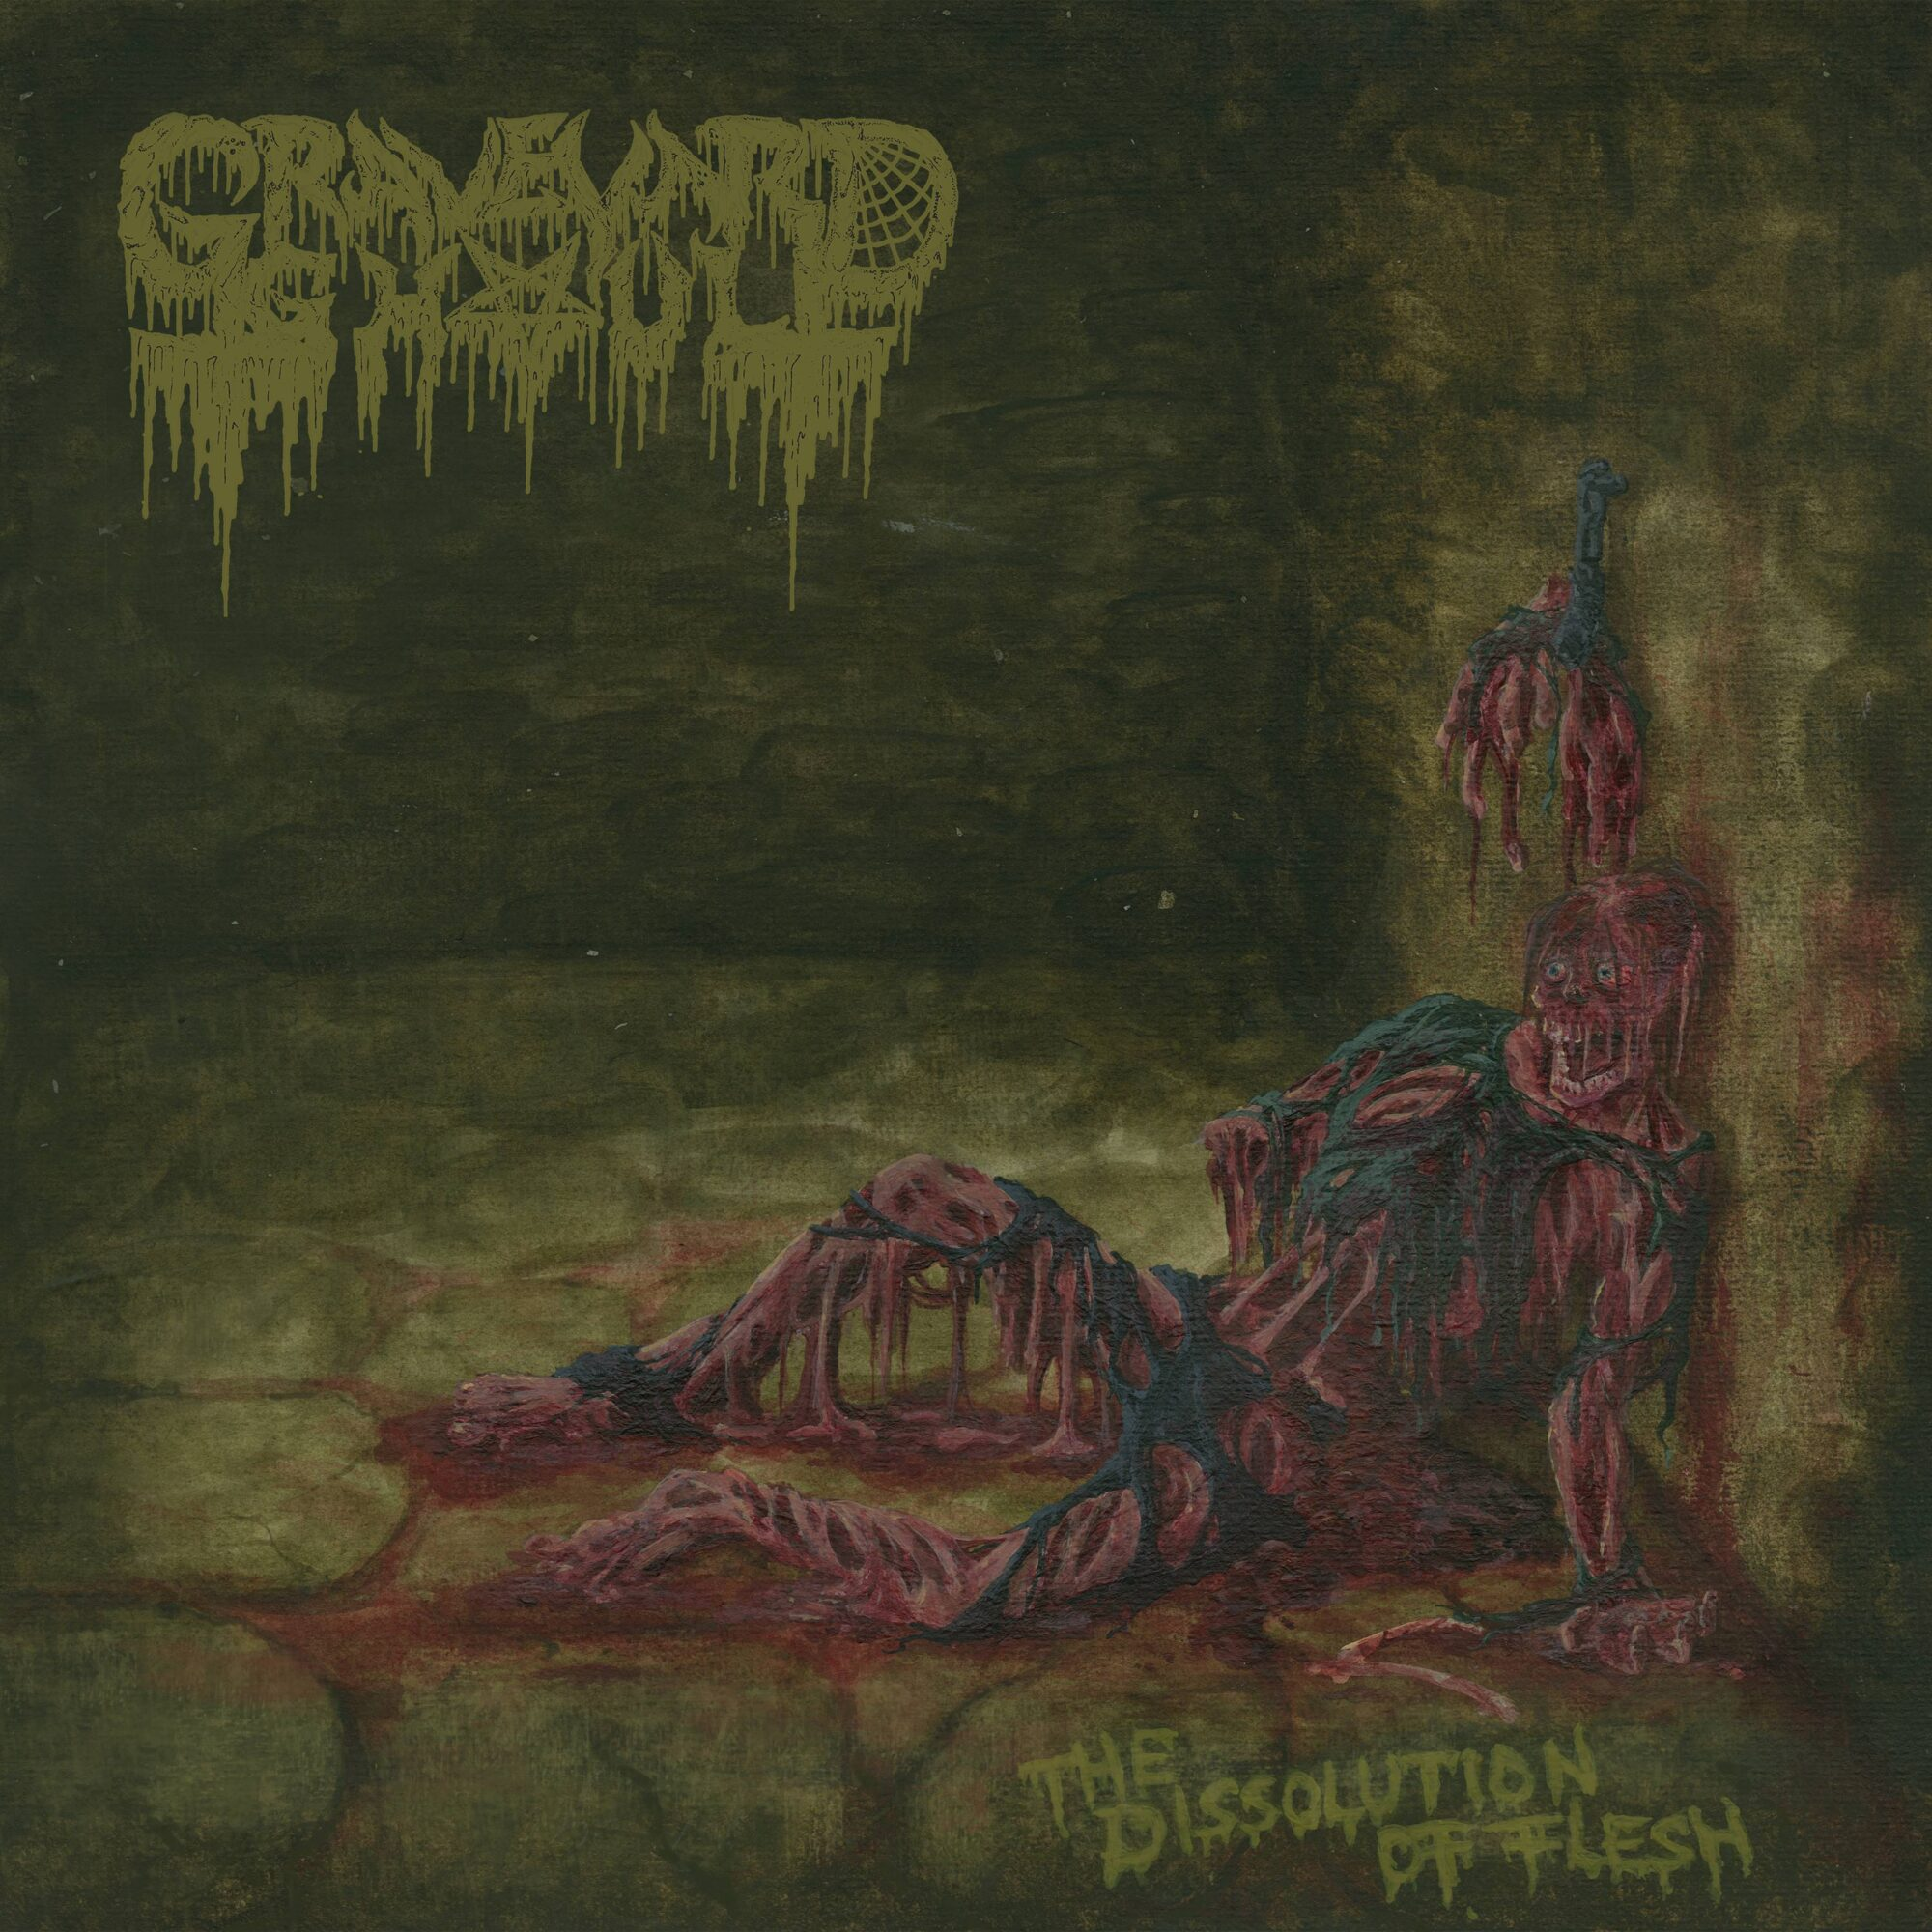 Graveyard Ghoul – The Dissolution of Flesh EP